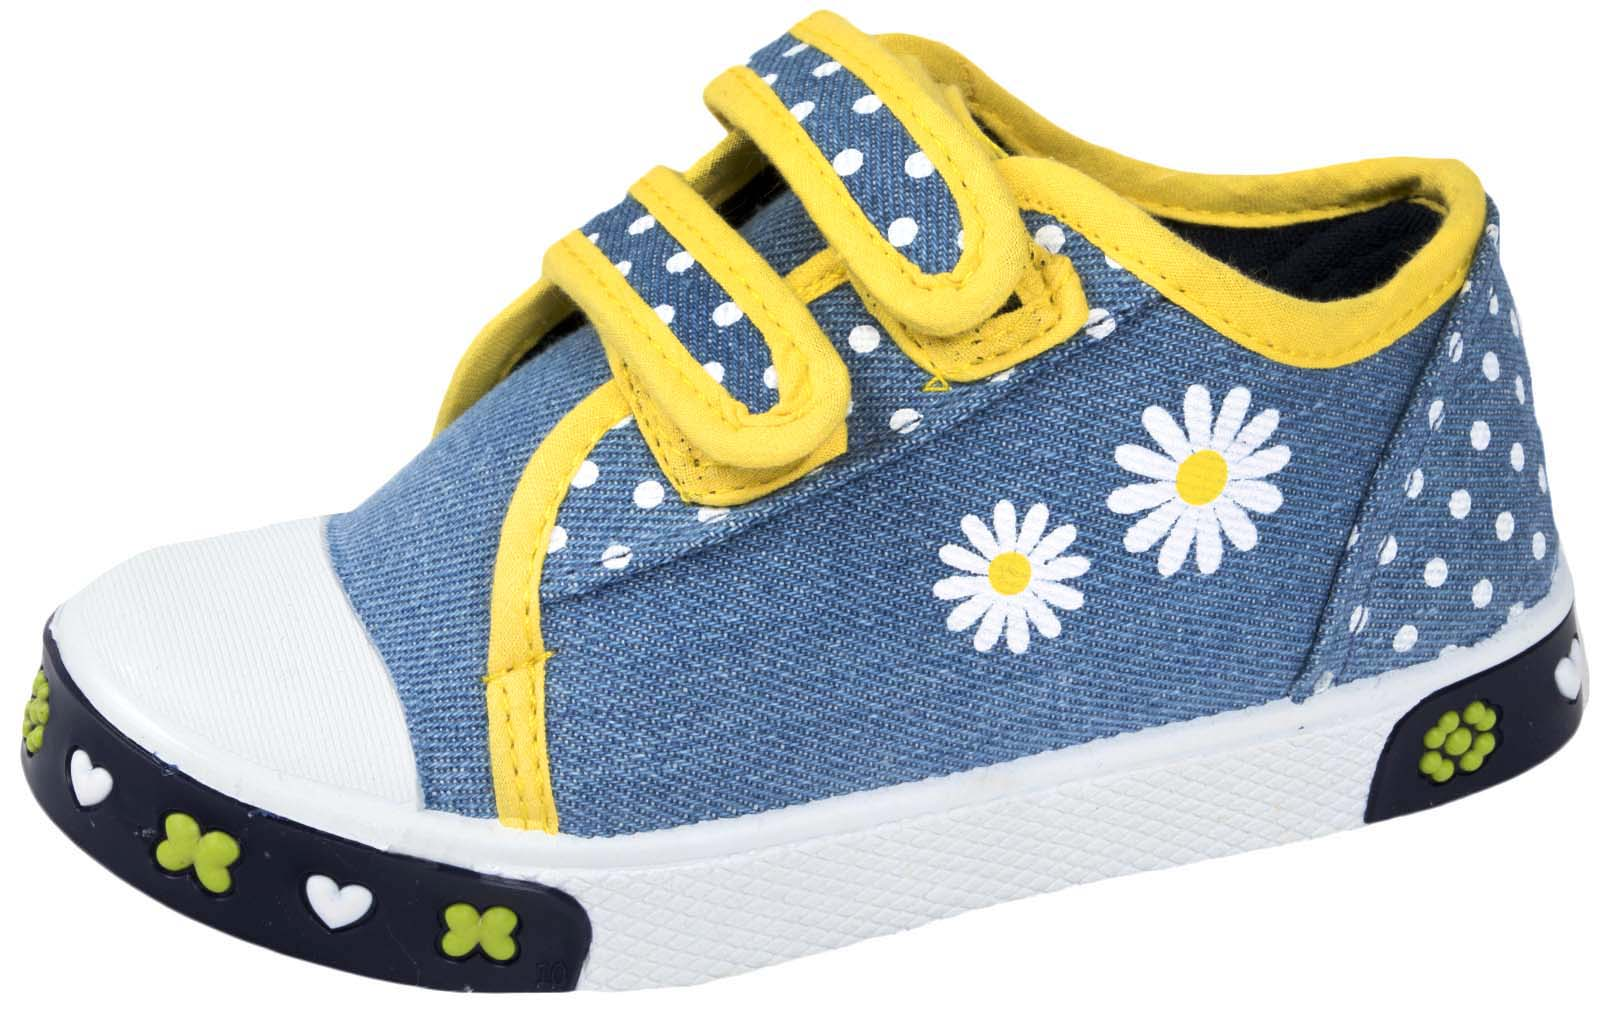 Kids Canvas Pumps Casual Summer Shoes Beach Holiday Skate Trainers Boys Girls